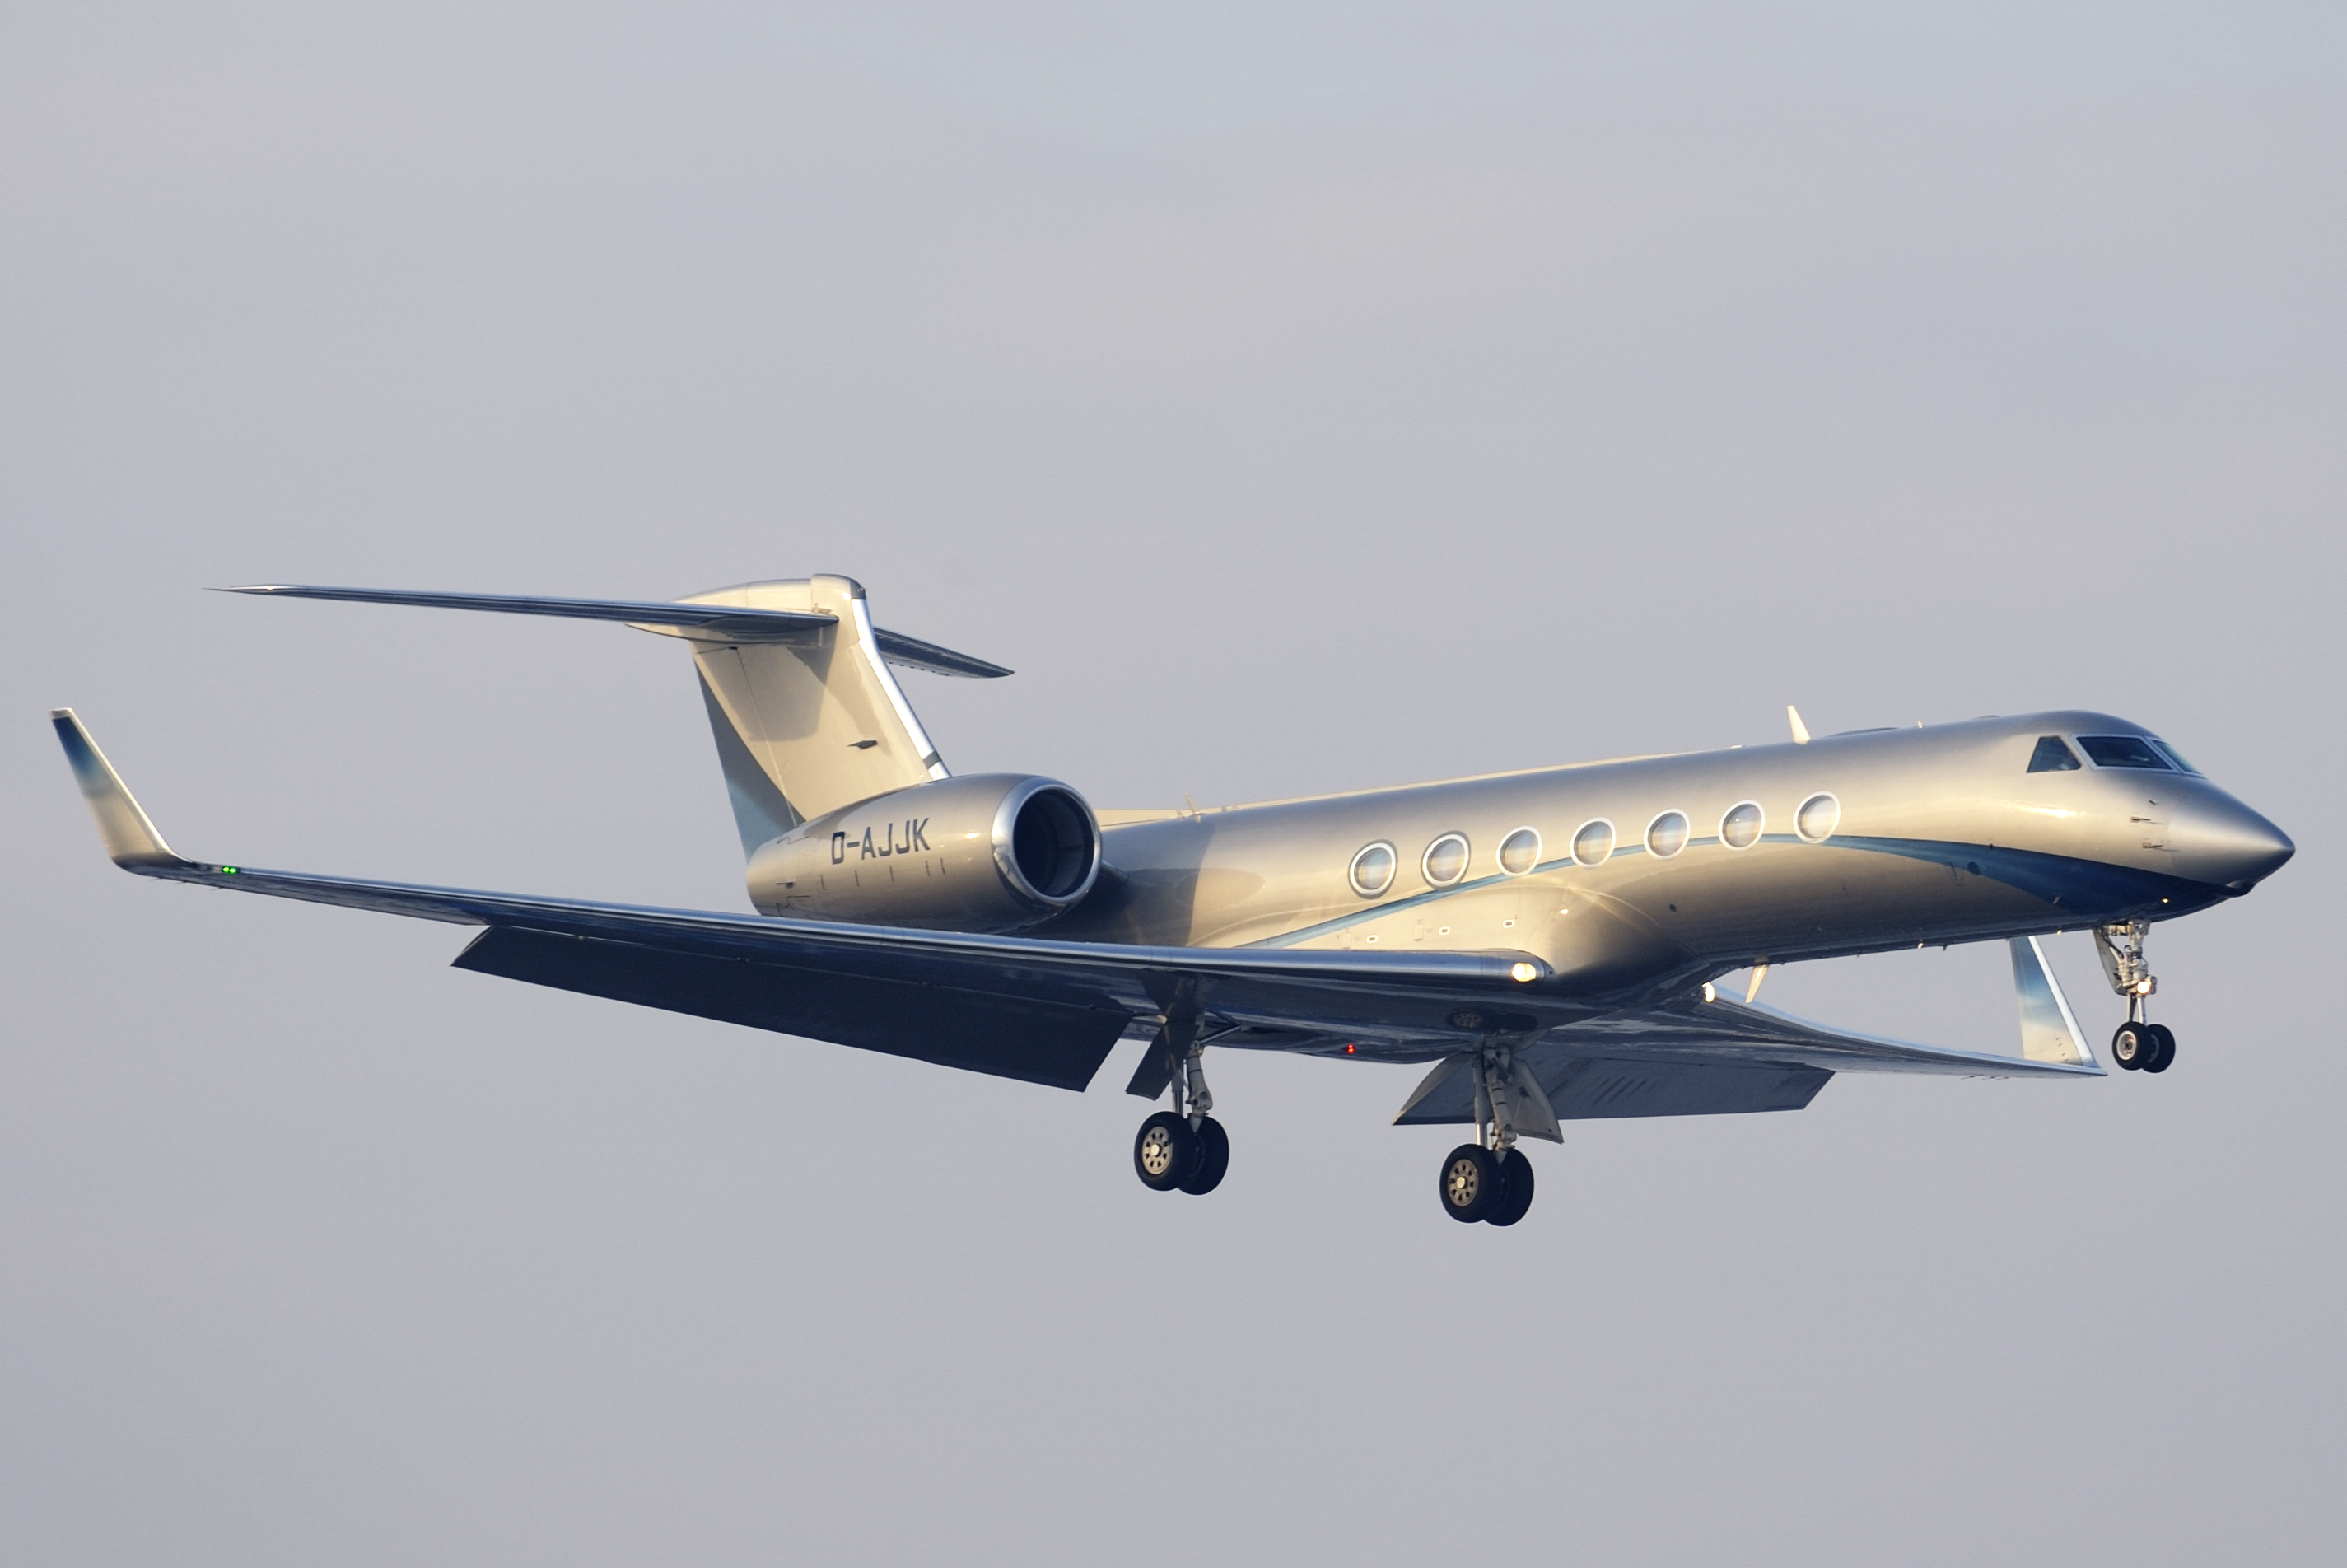 File:Gulfstream G550 D-AJJK Windrose Air (4389045416).jpg ...